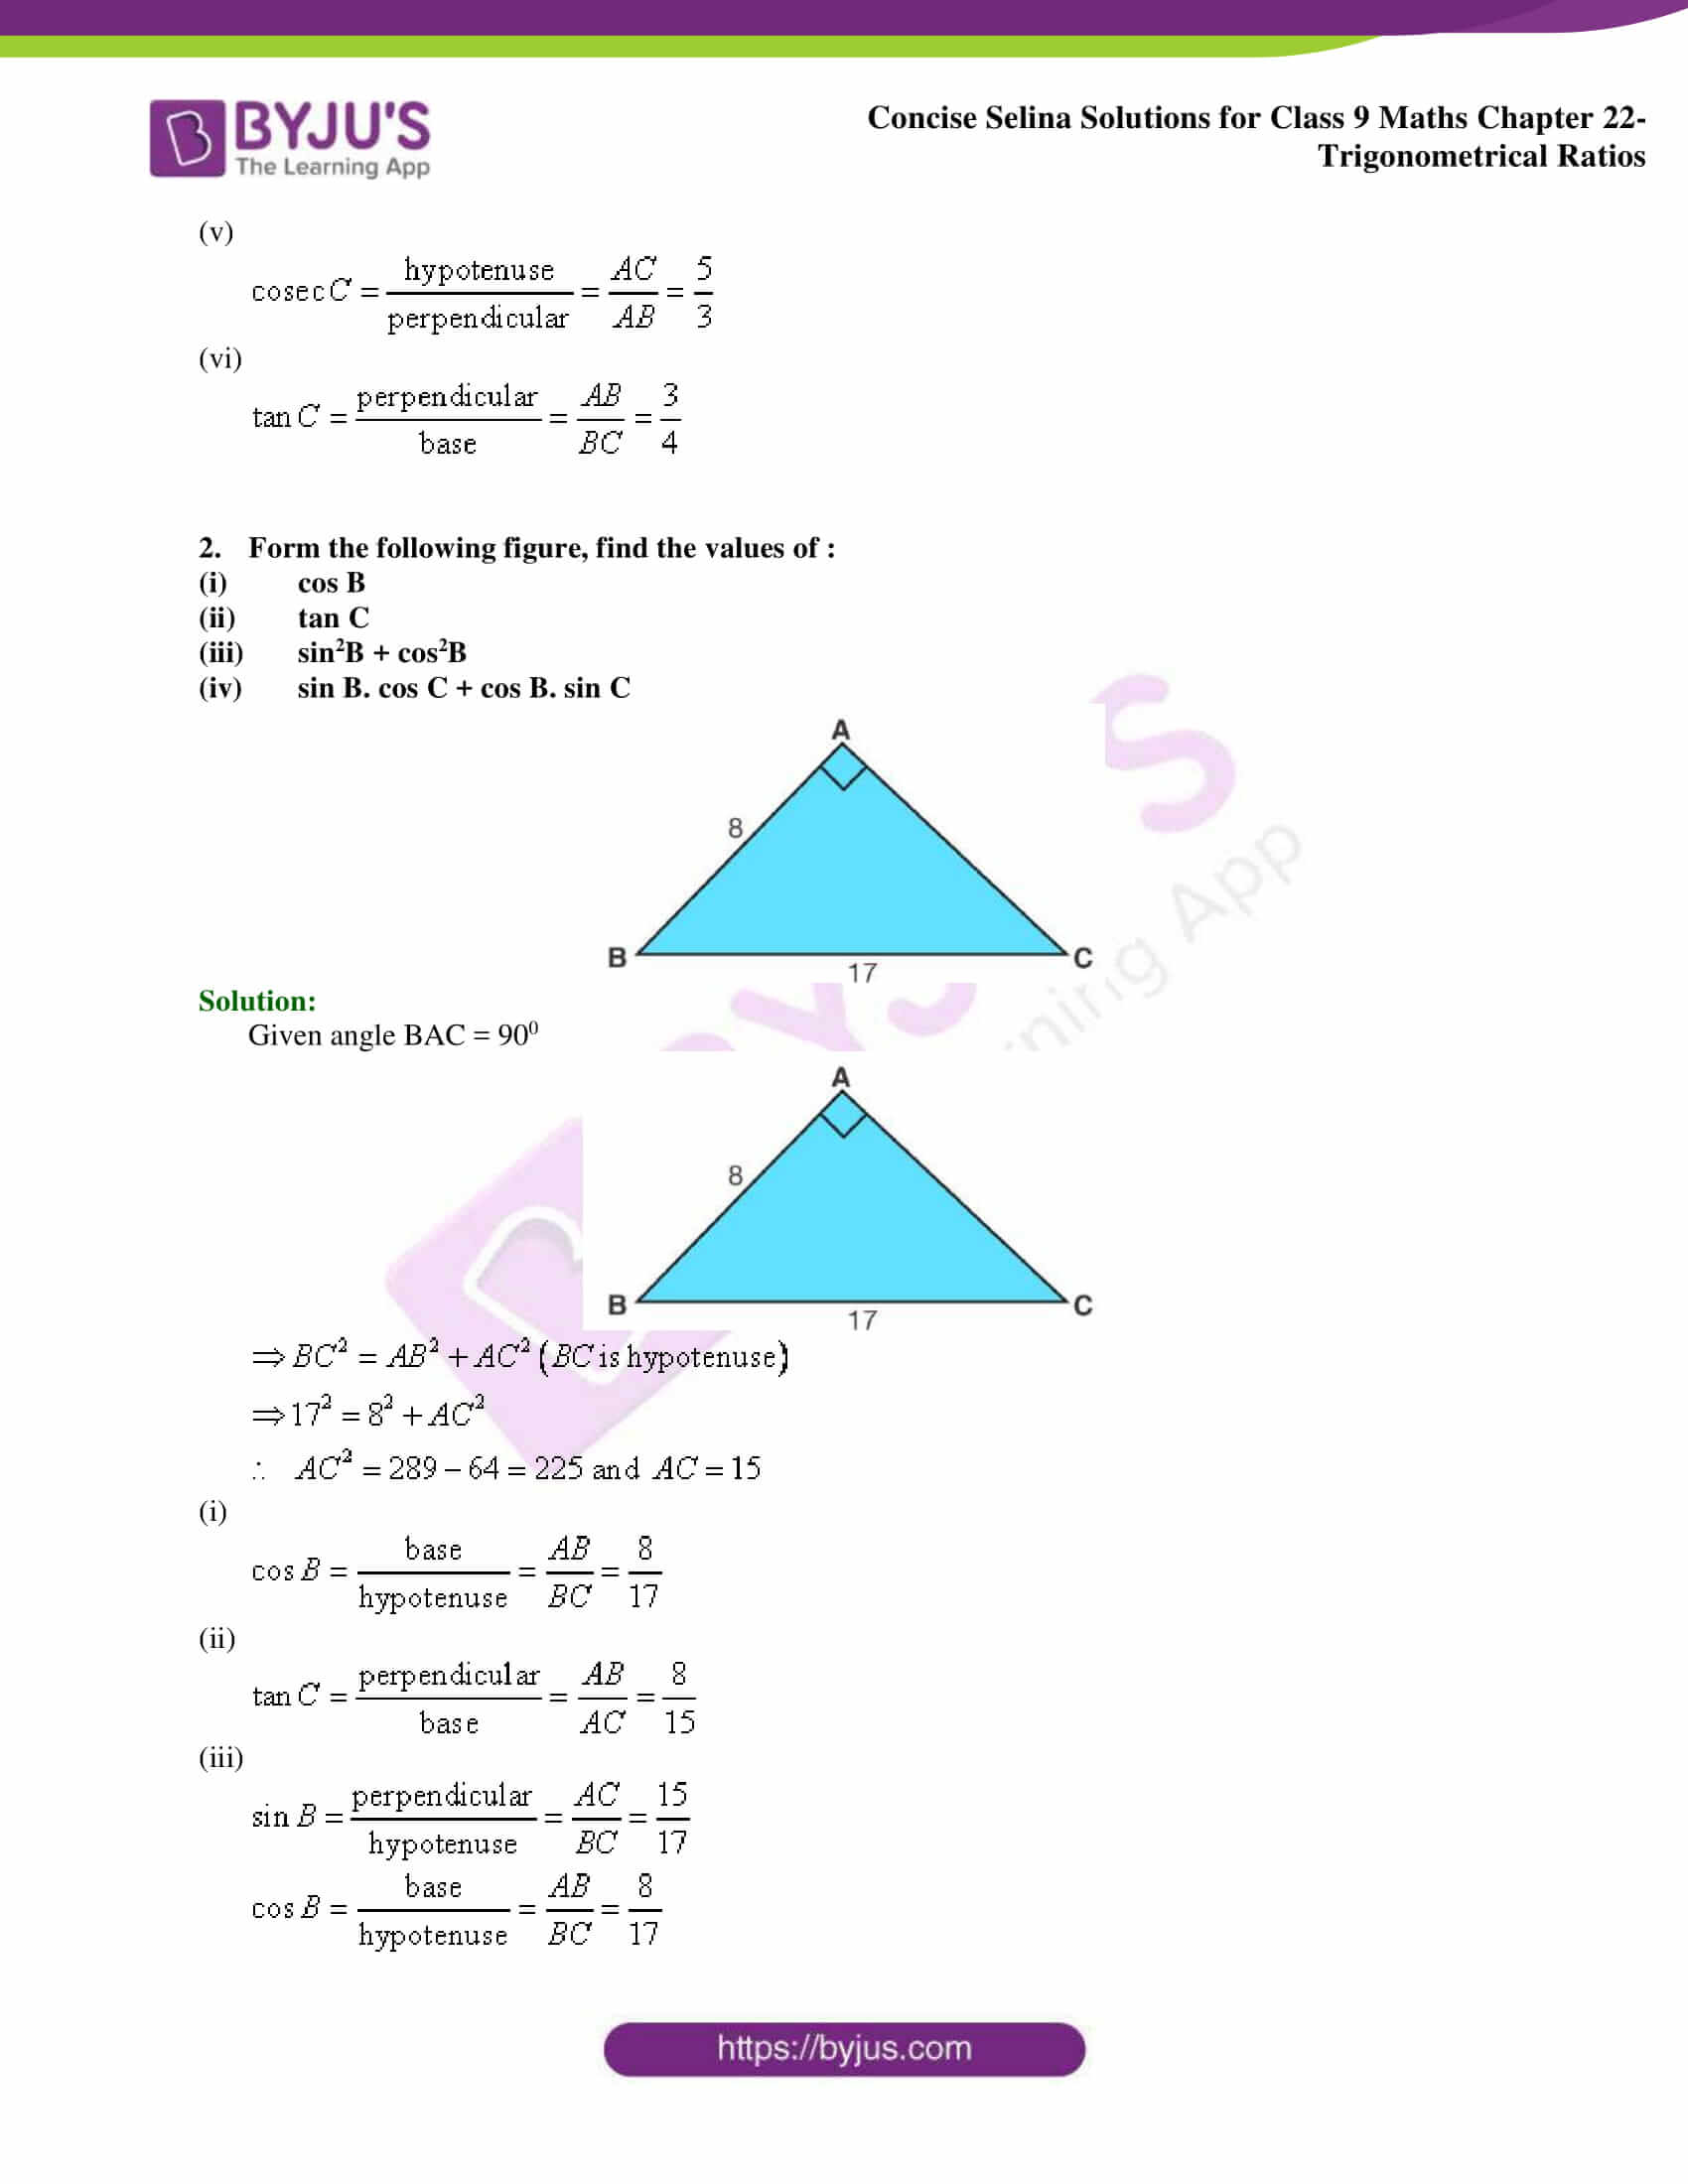 Concise Selina Solutions Class 9 Maths Chapter 22 Trigonometrical Ratios part 02